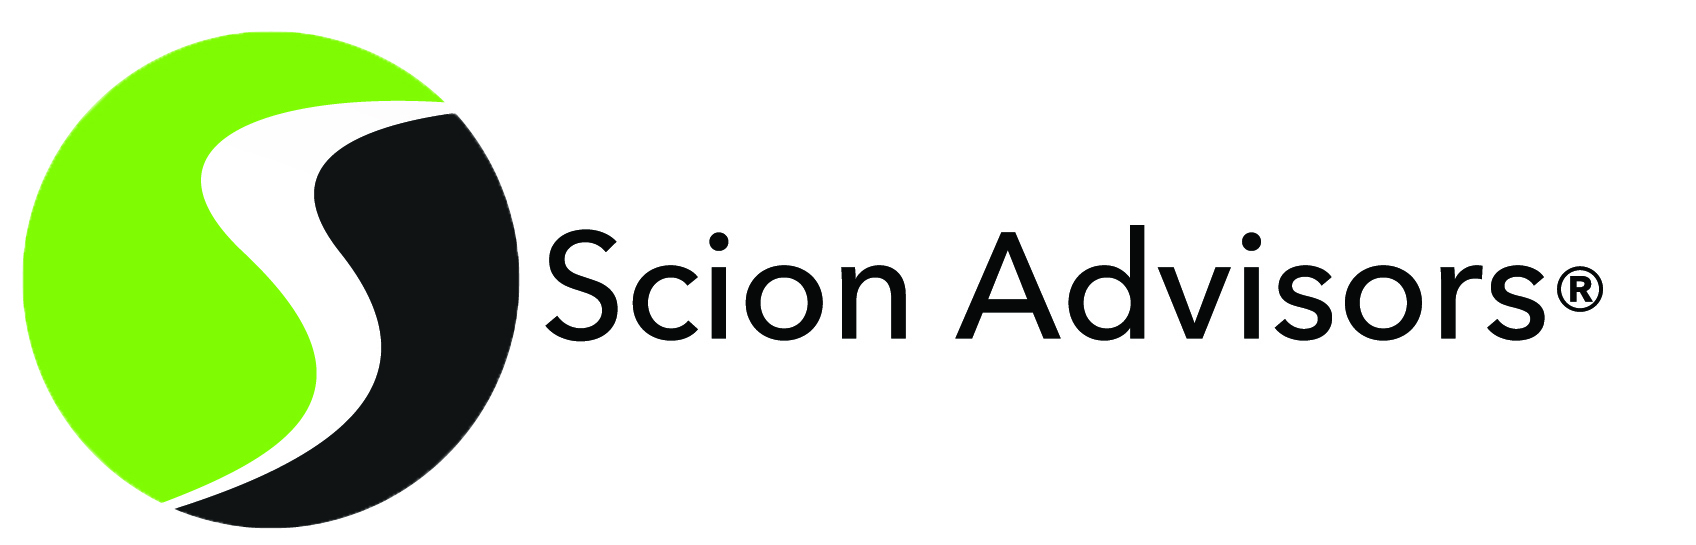 Scion Advisors